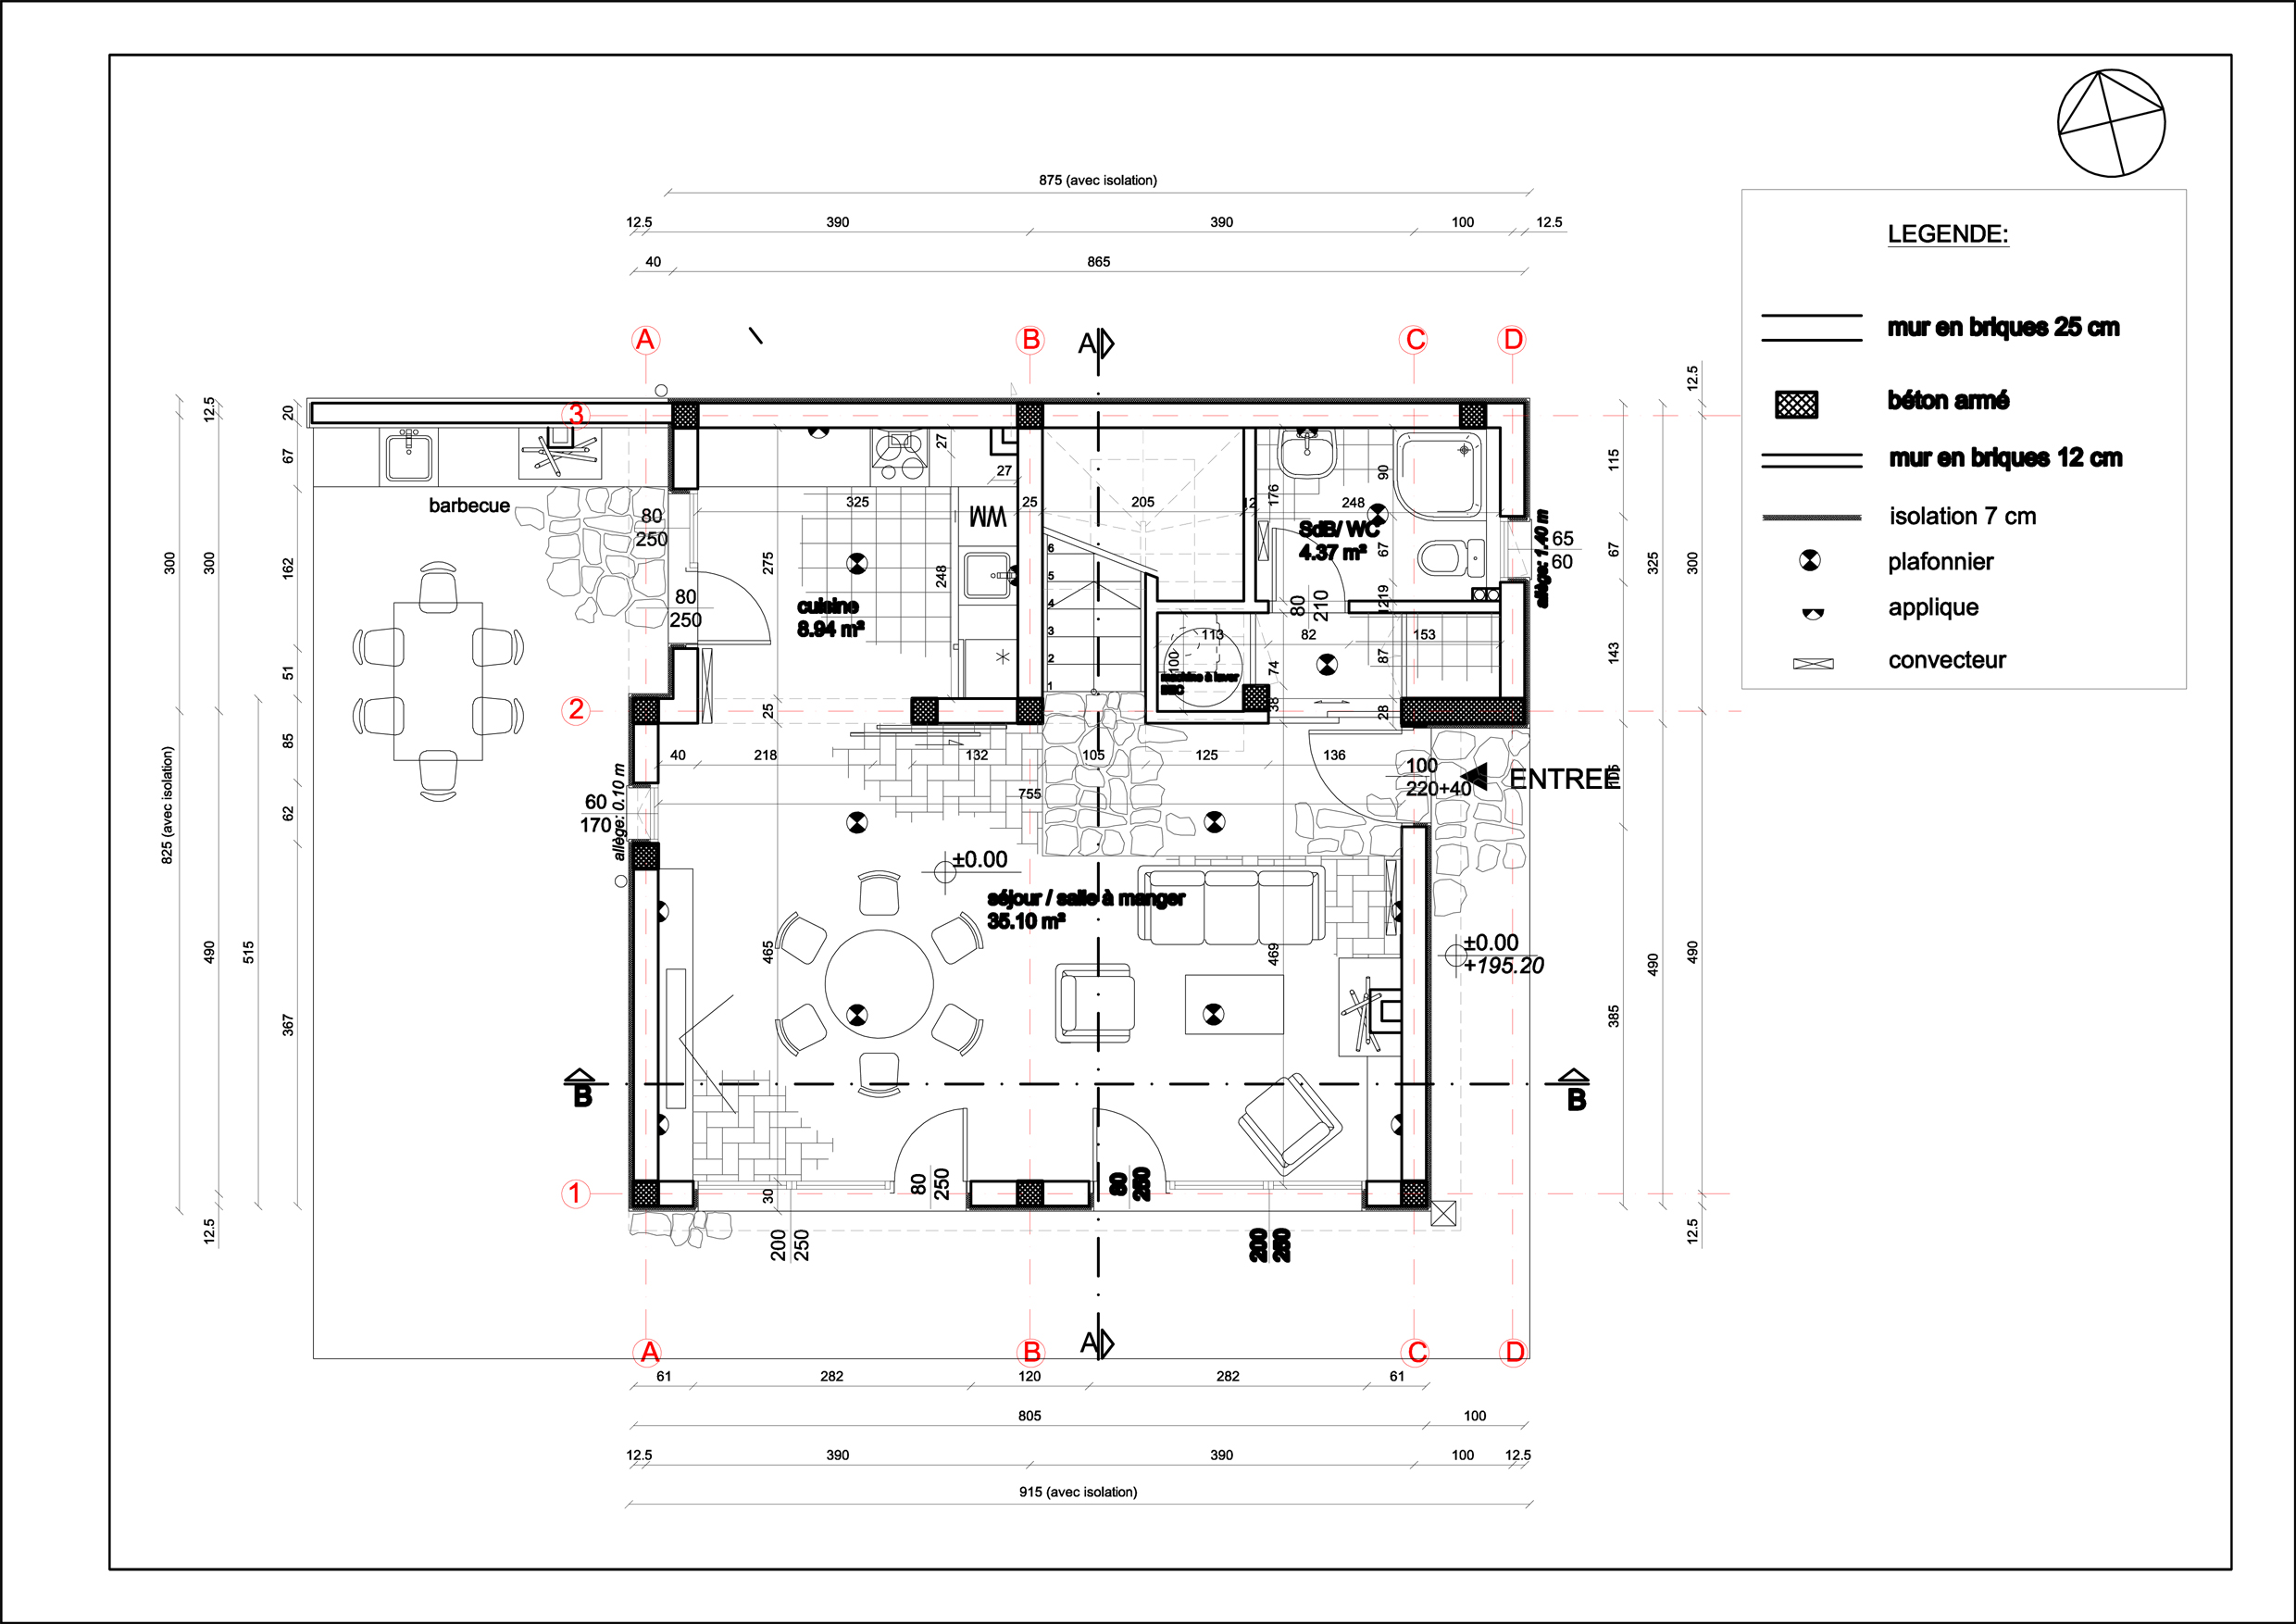 dessin de maison architecte amazing plan maison architecte d un outil de pour dessiner. Black Bedroom Furniture Sets. Home Design Ideas